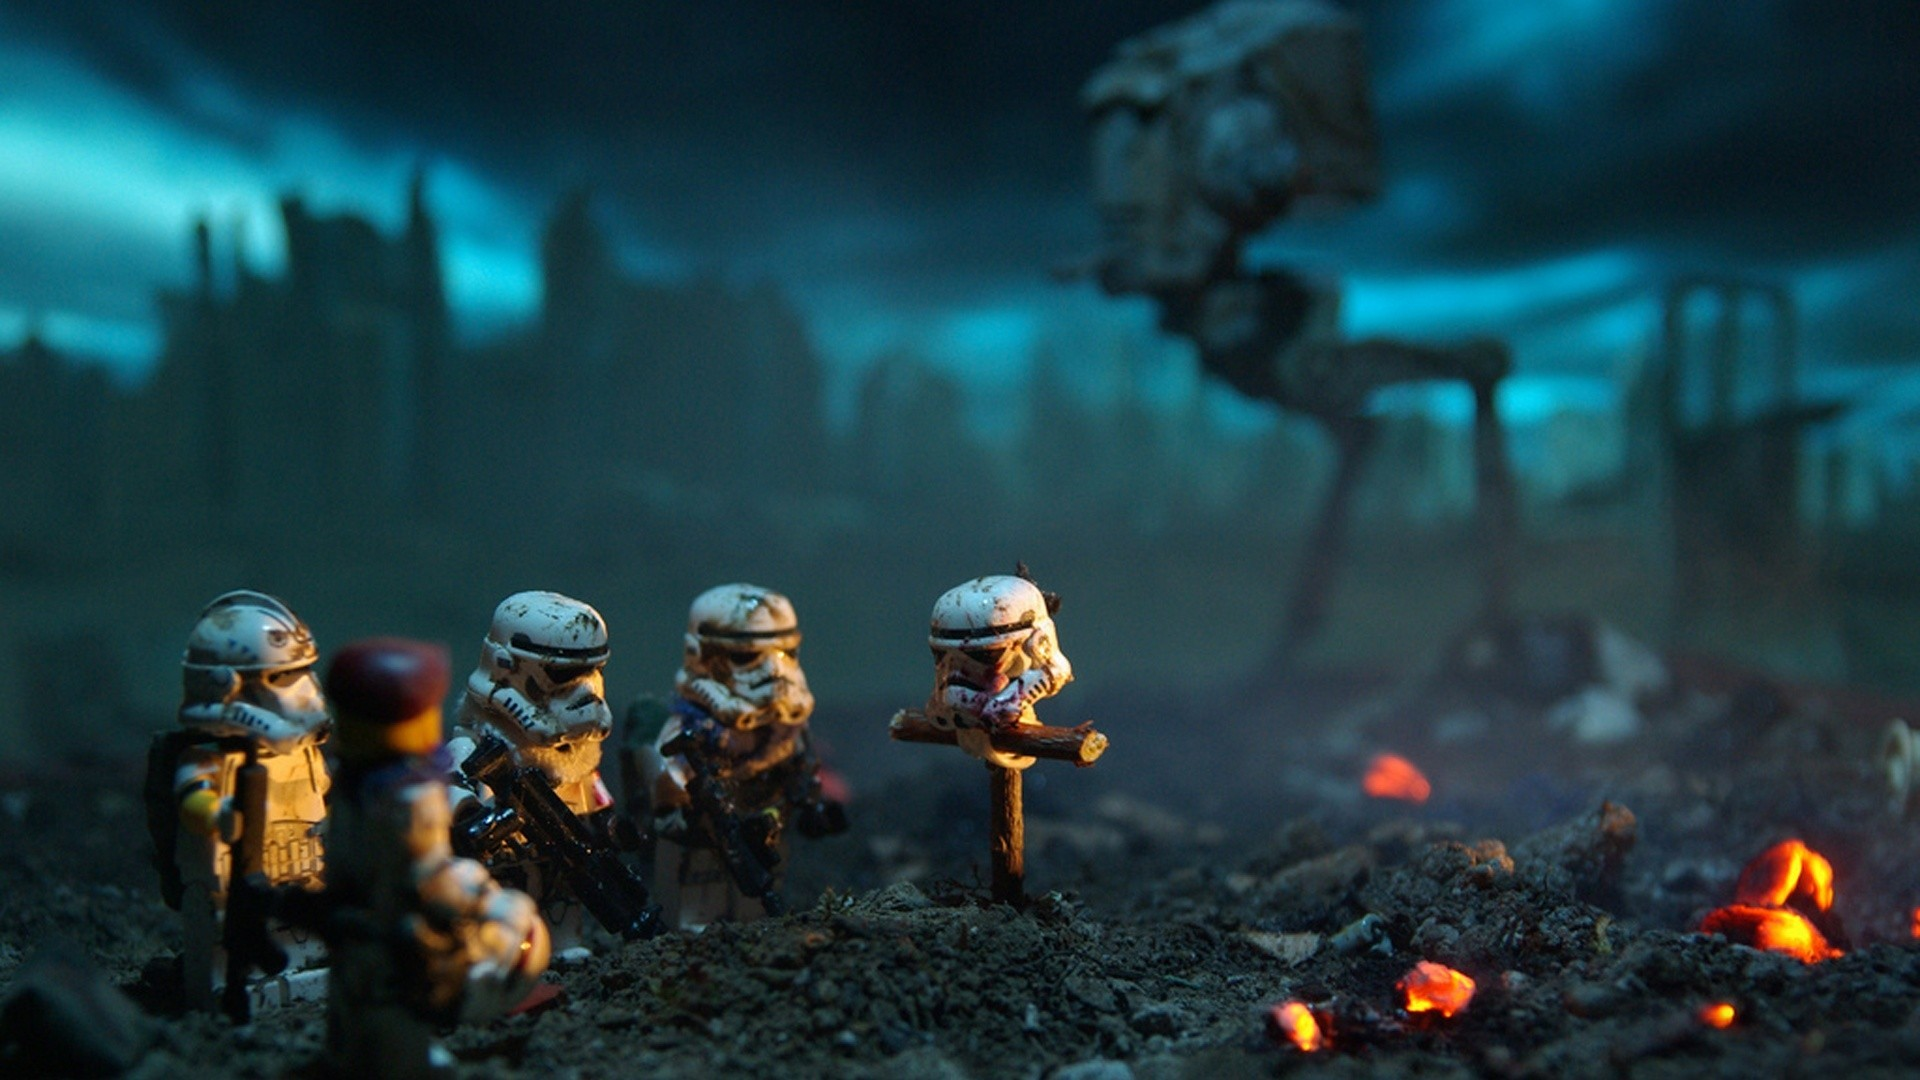 Star Wars Lego Cool Pictures HD wallpaper